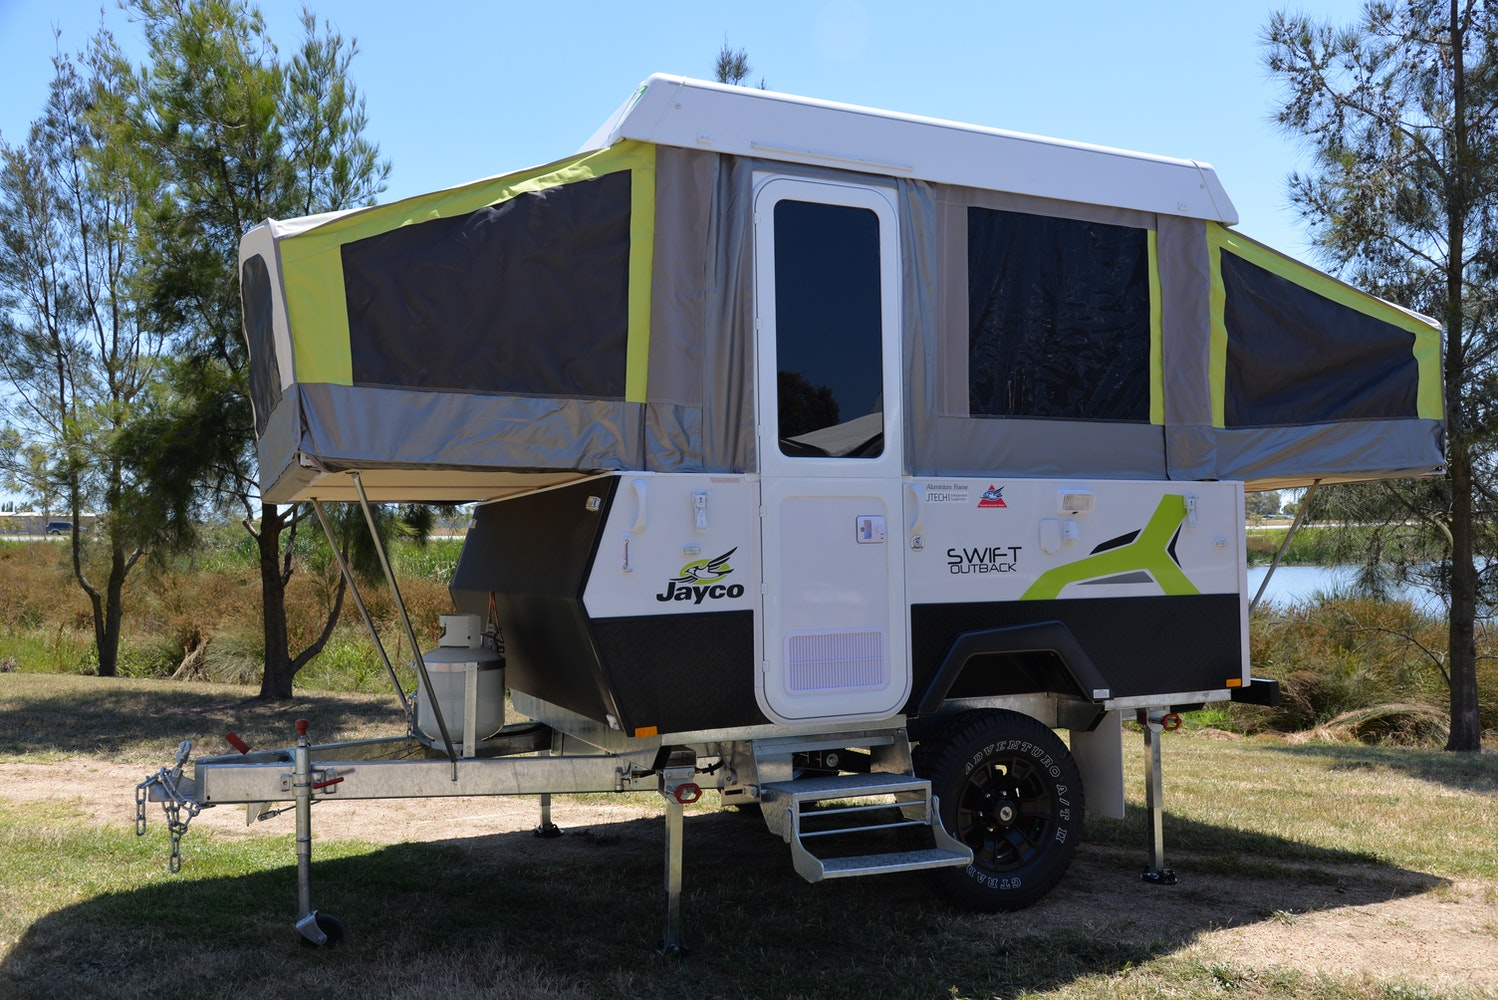 jayco swift outback off road camper trailers for sale in mulgrave. Black Bedroom Furniture Sets. Home Design Ideas